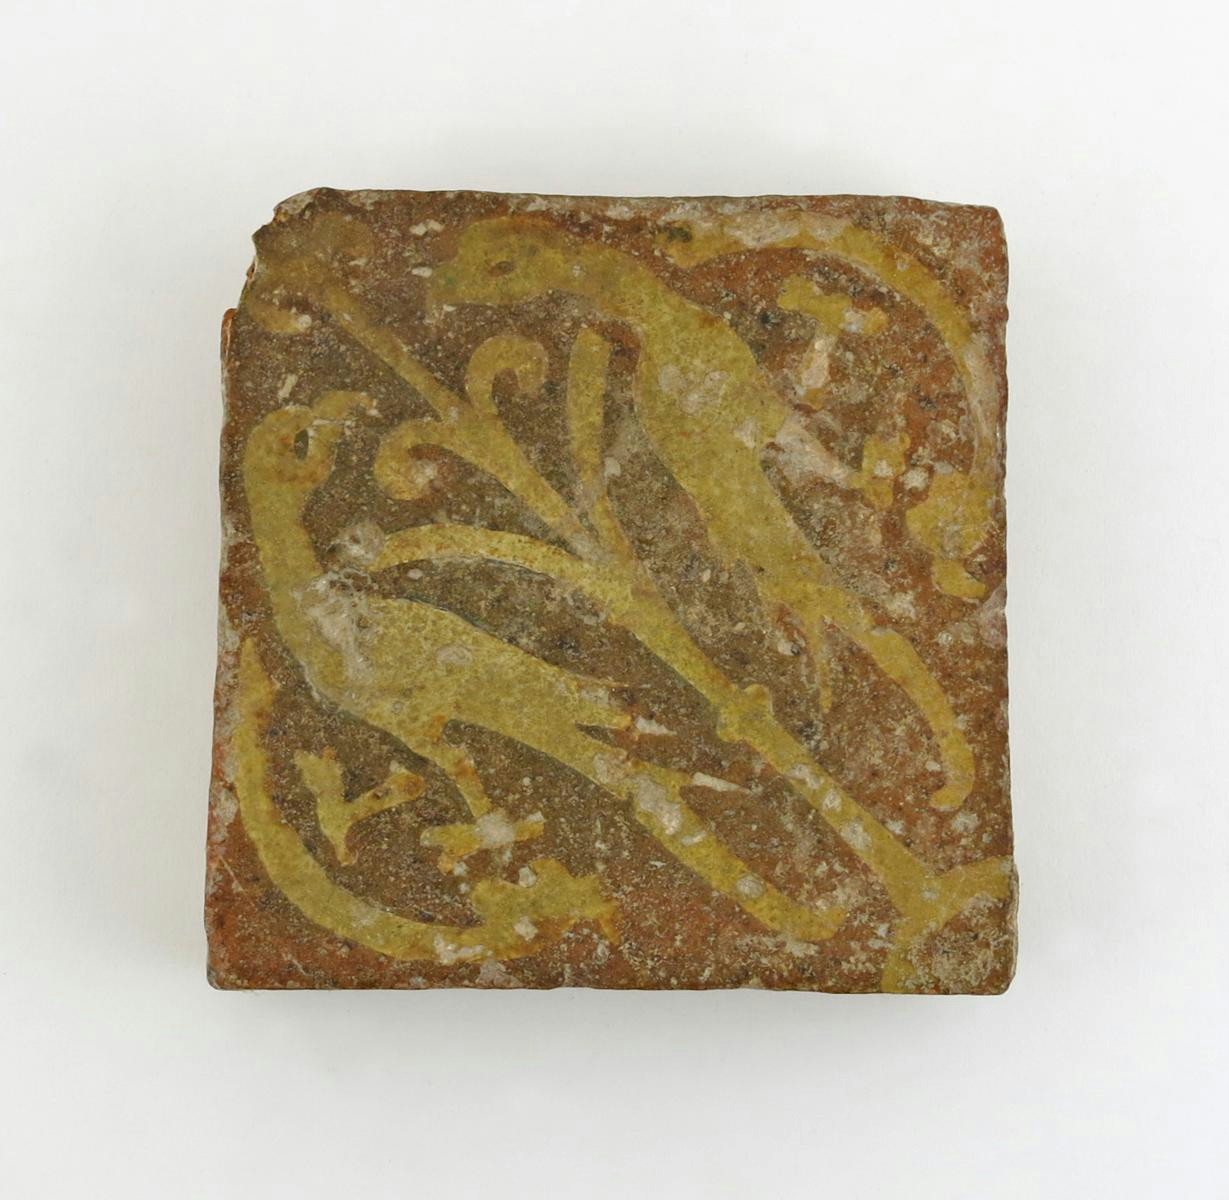 A large medieval encaustic floor tile c13th century lot 221 english and european ceramics and glass lot 221 dailygadgetfo Images